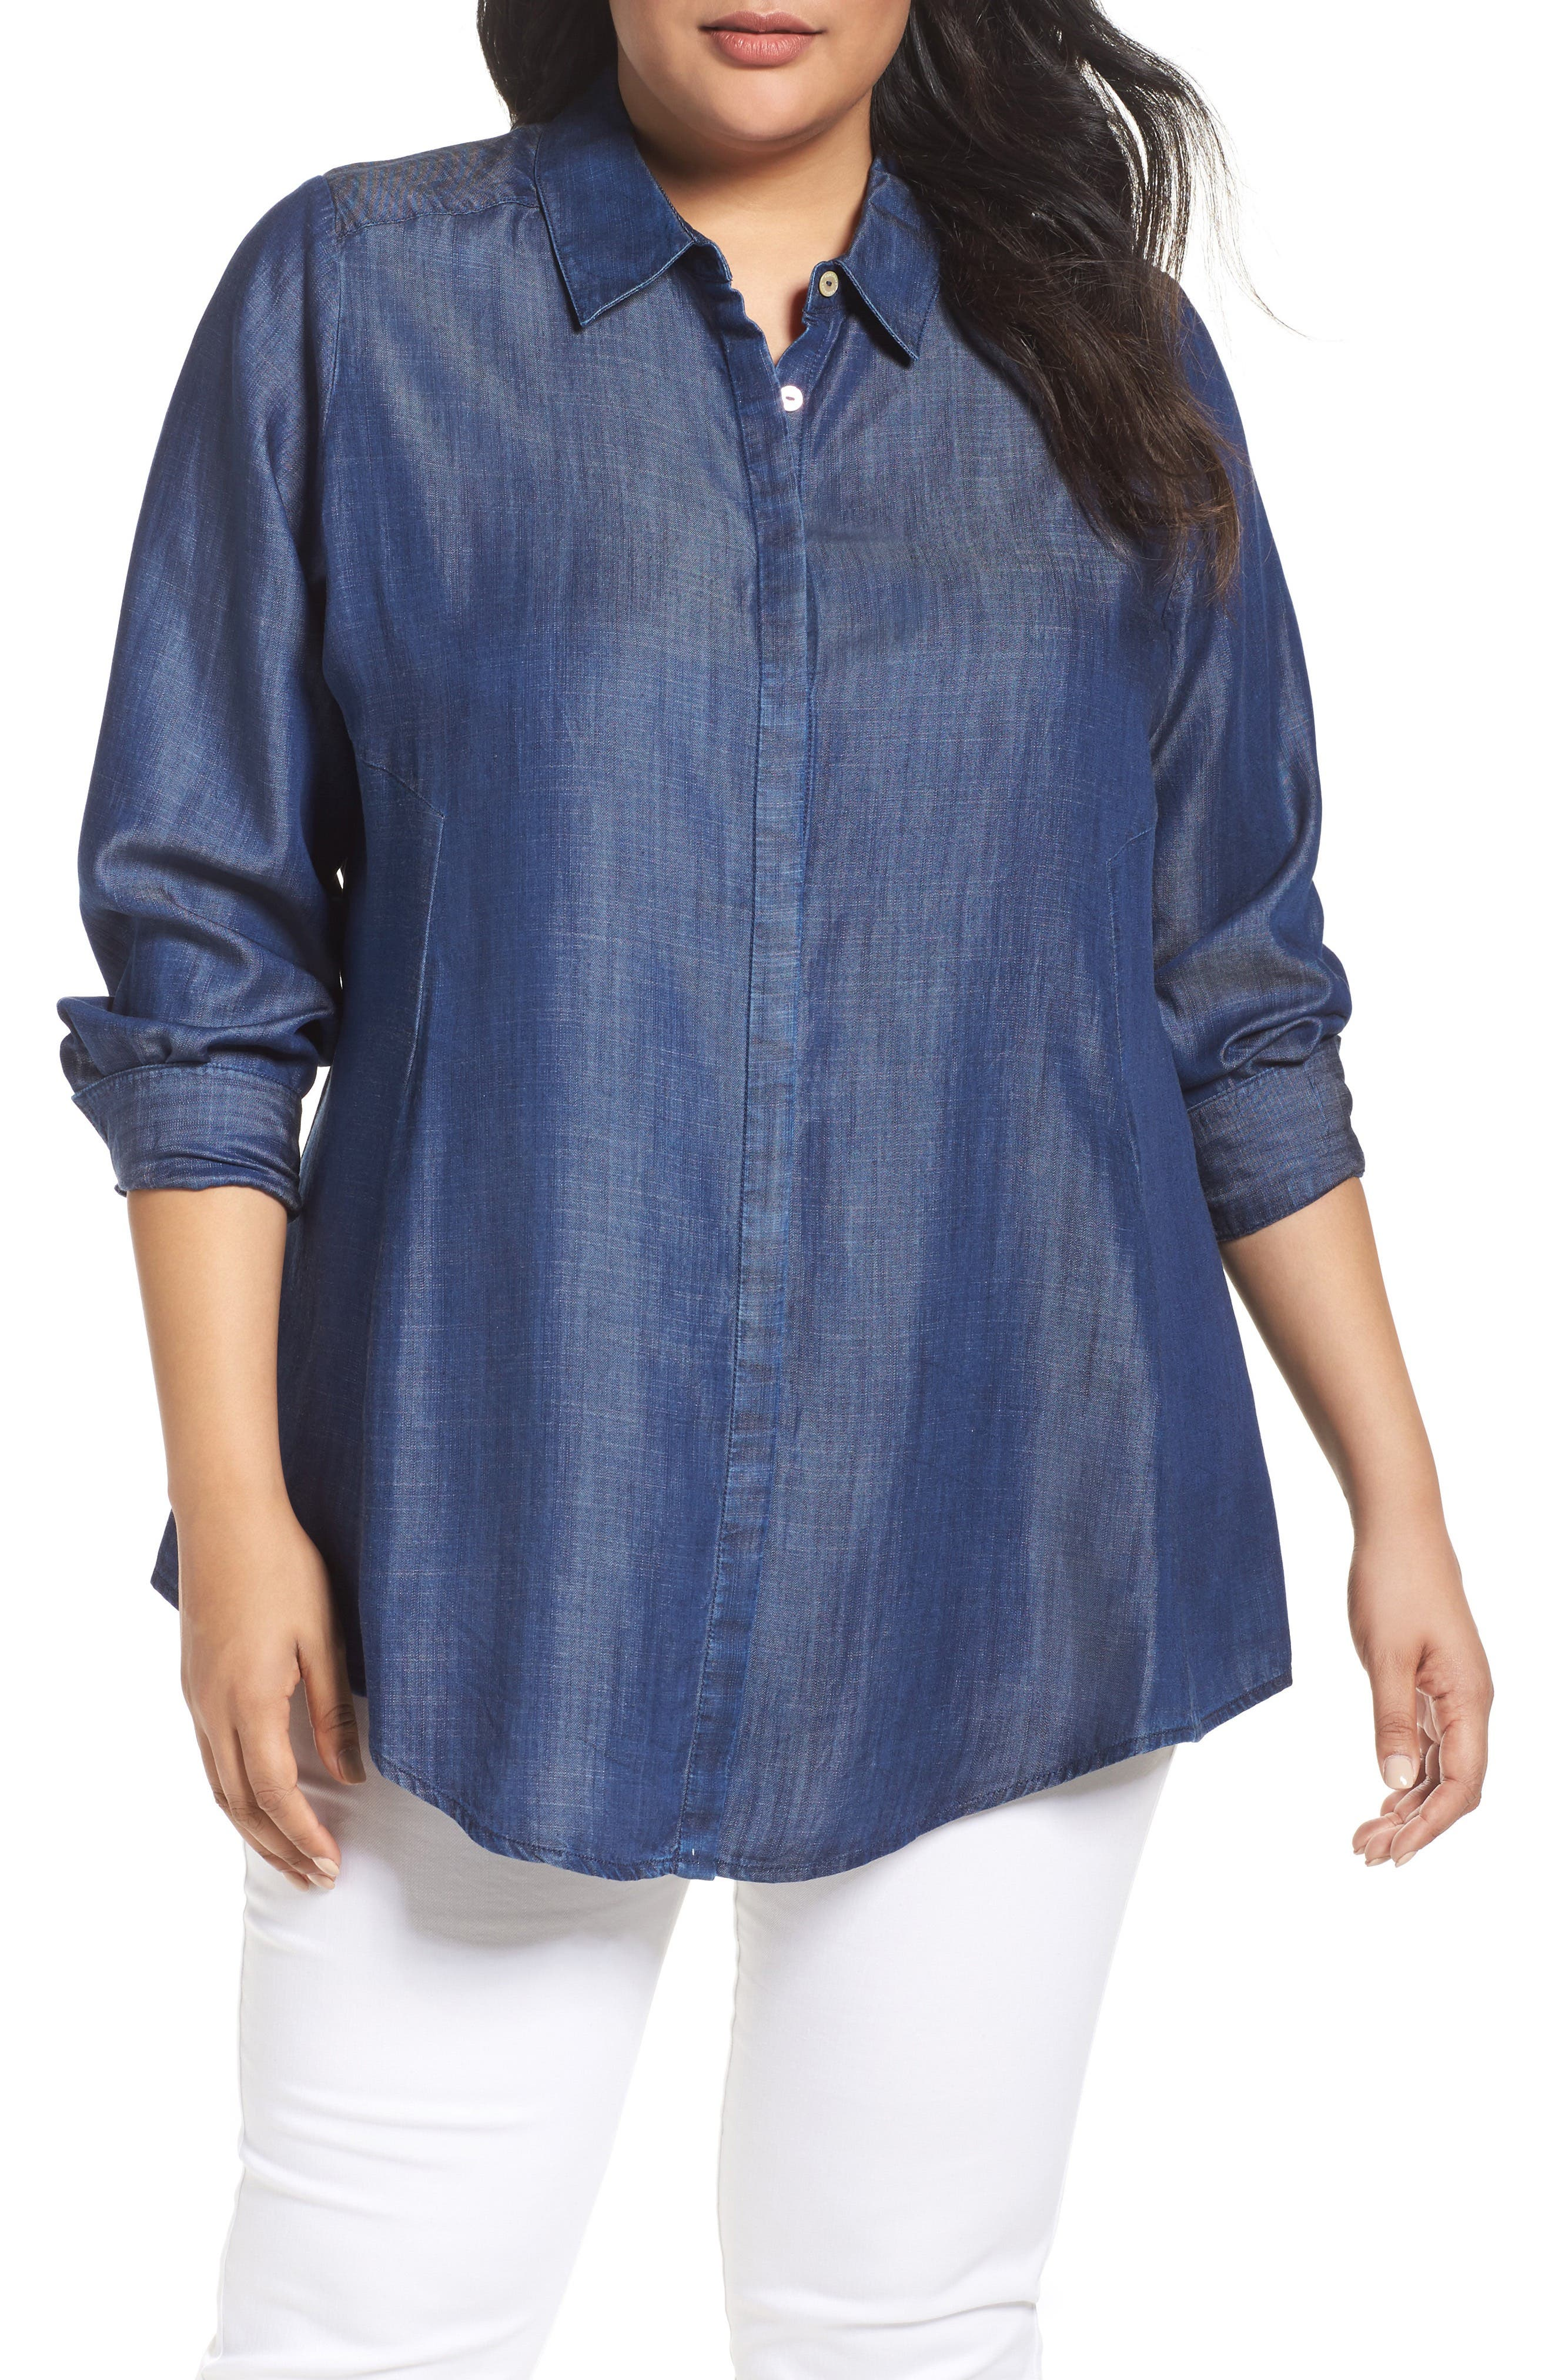 Alternate Image 1 Selected - Foxcroft Chambray Tunic (Plus Size)